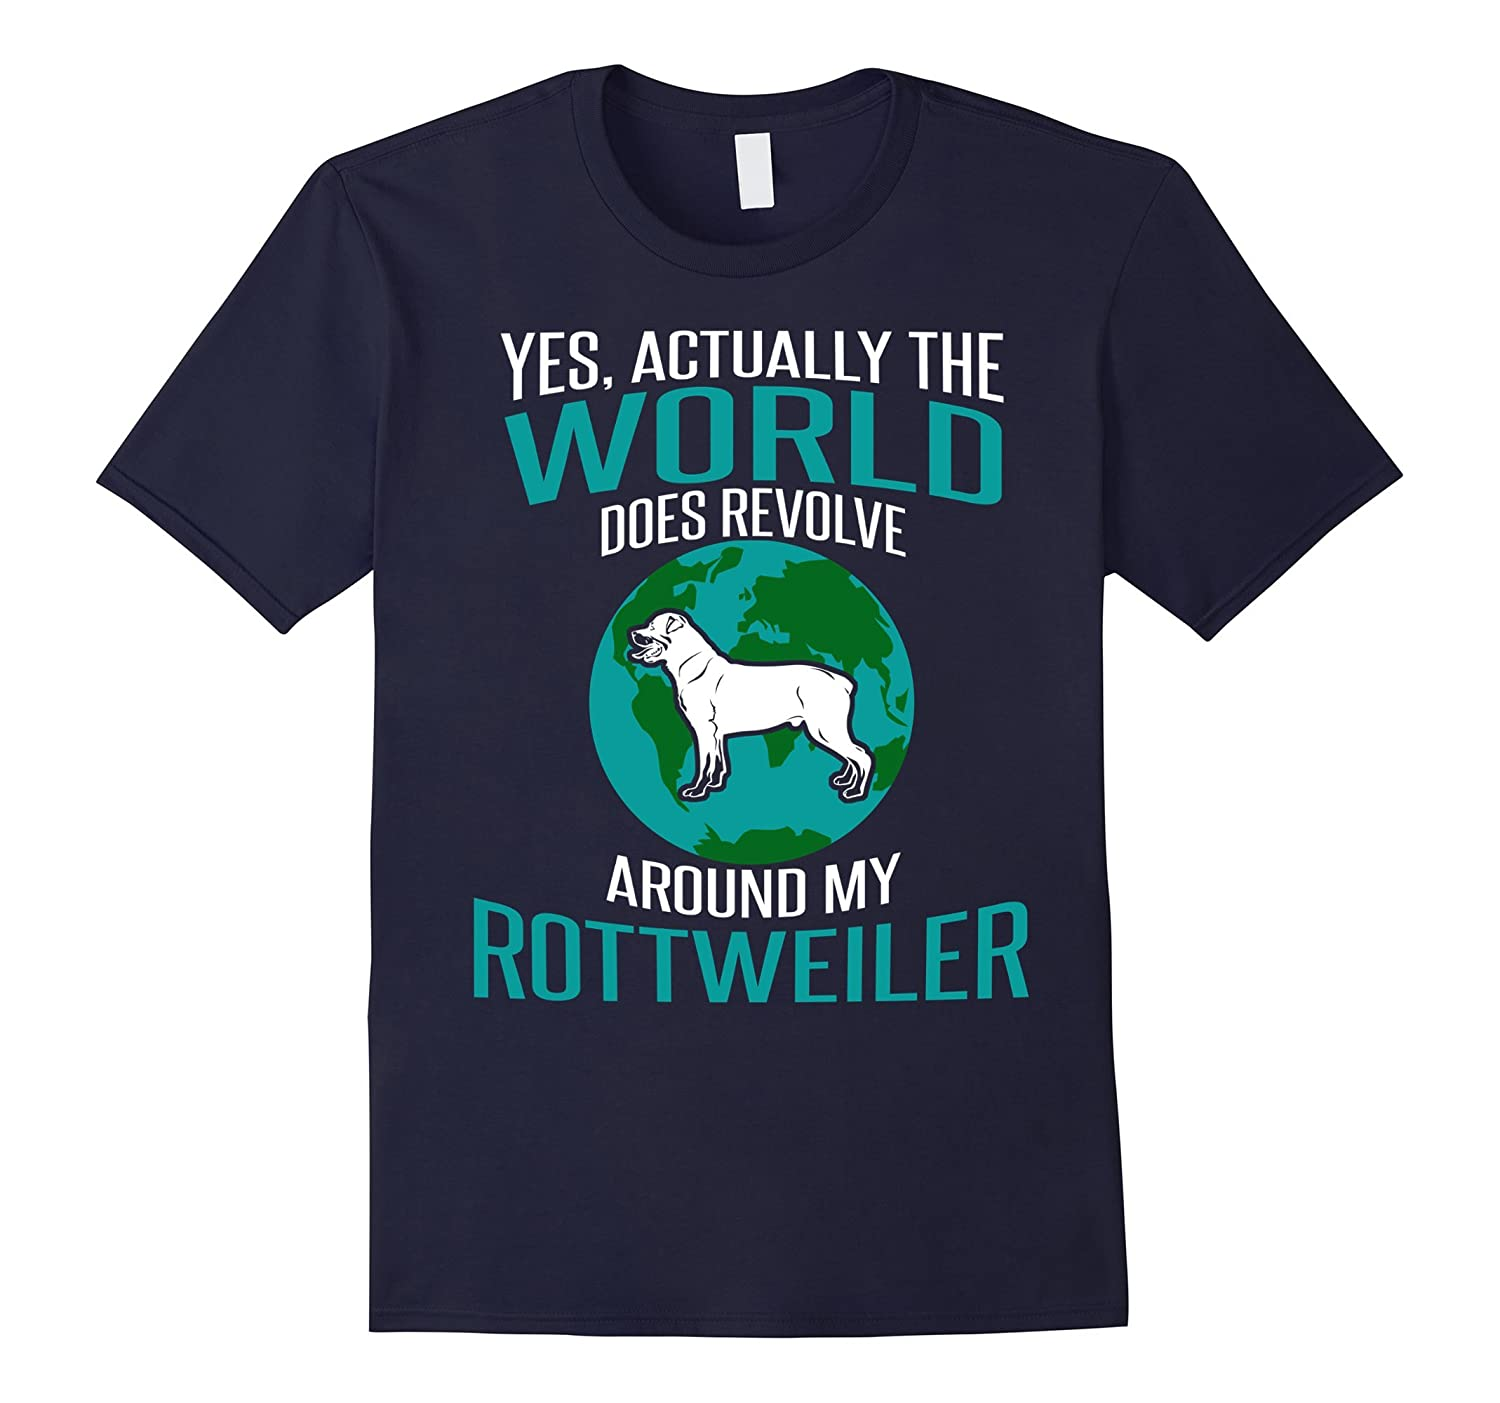 Yes, Actually The World Does Revolve Around My Rottweiler-Art